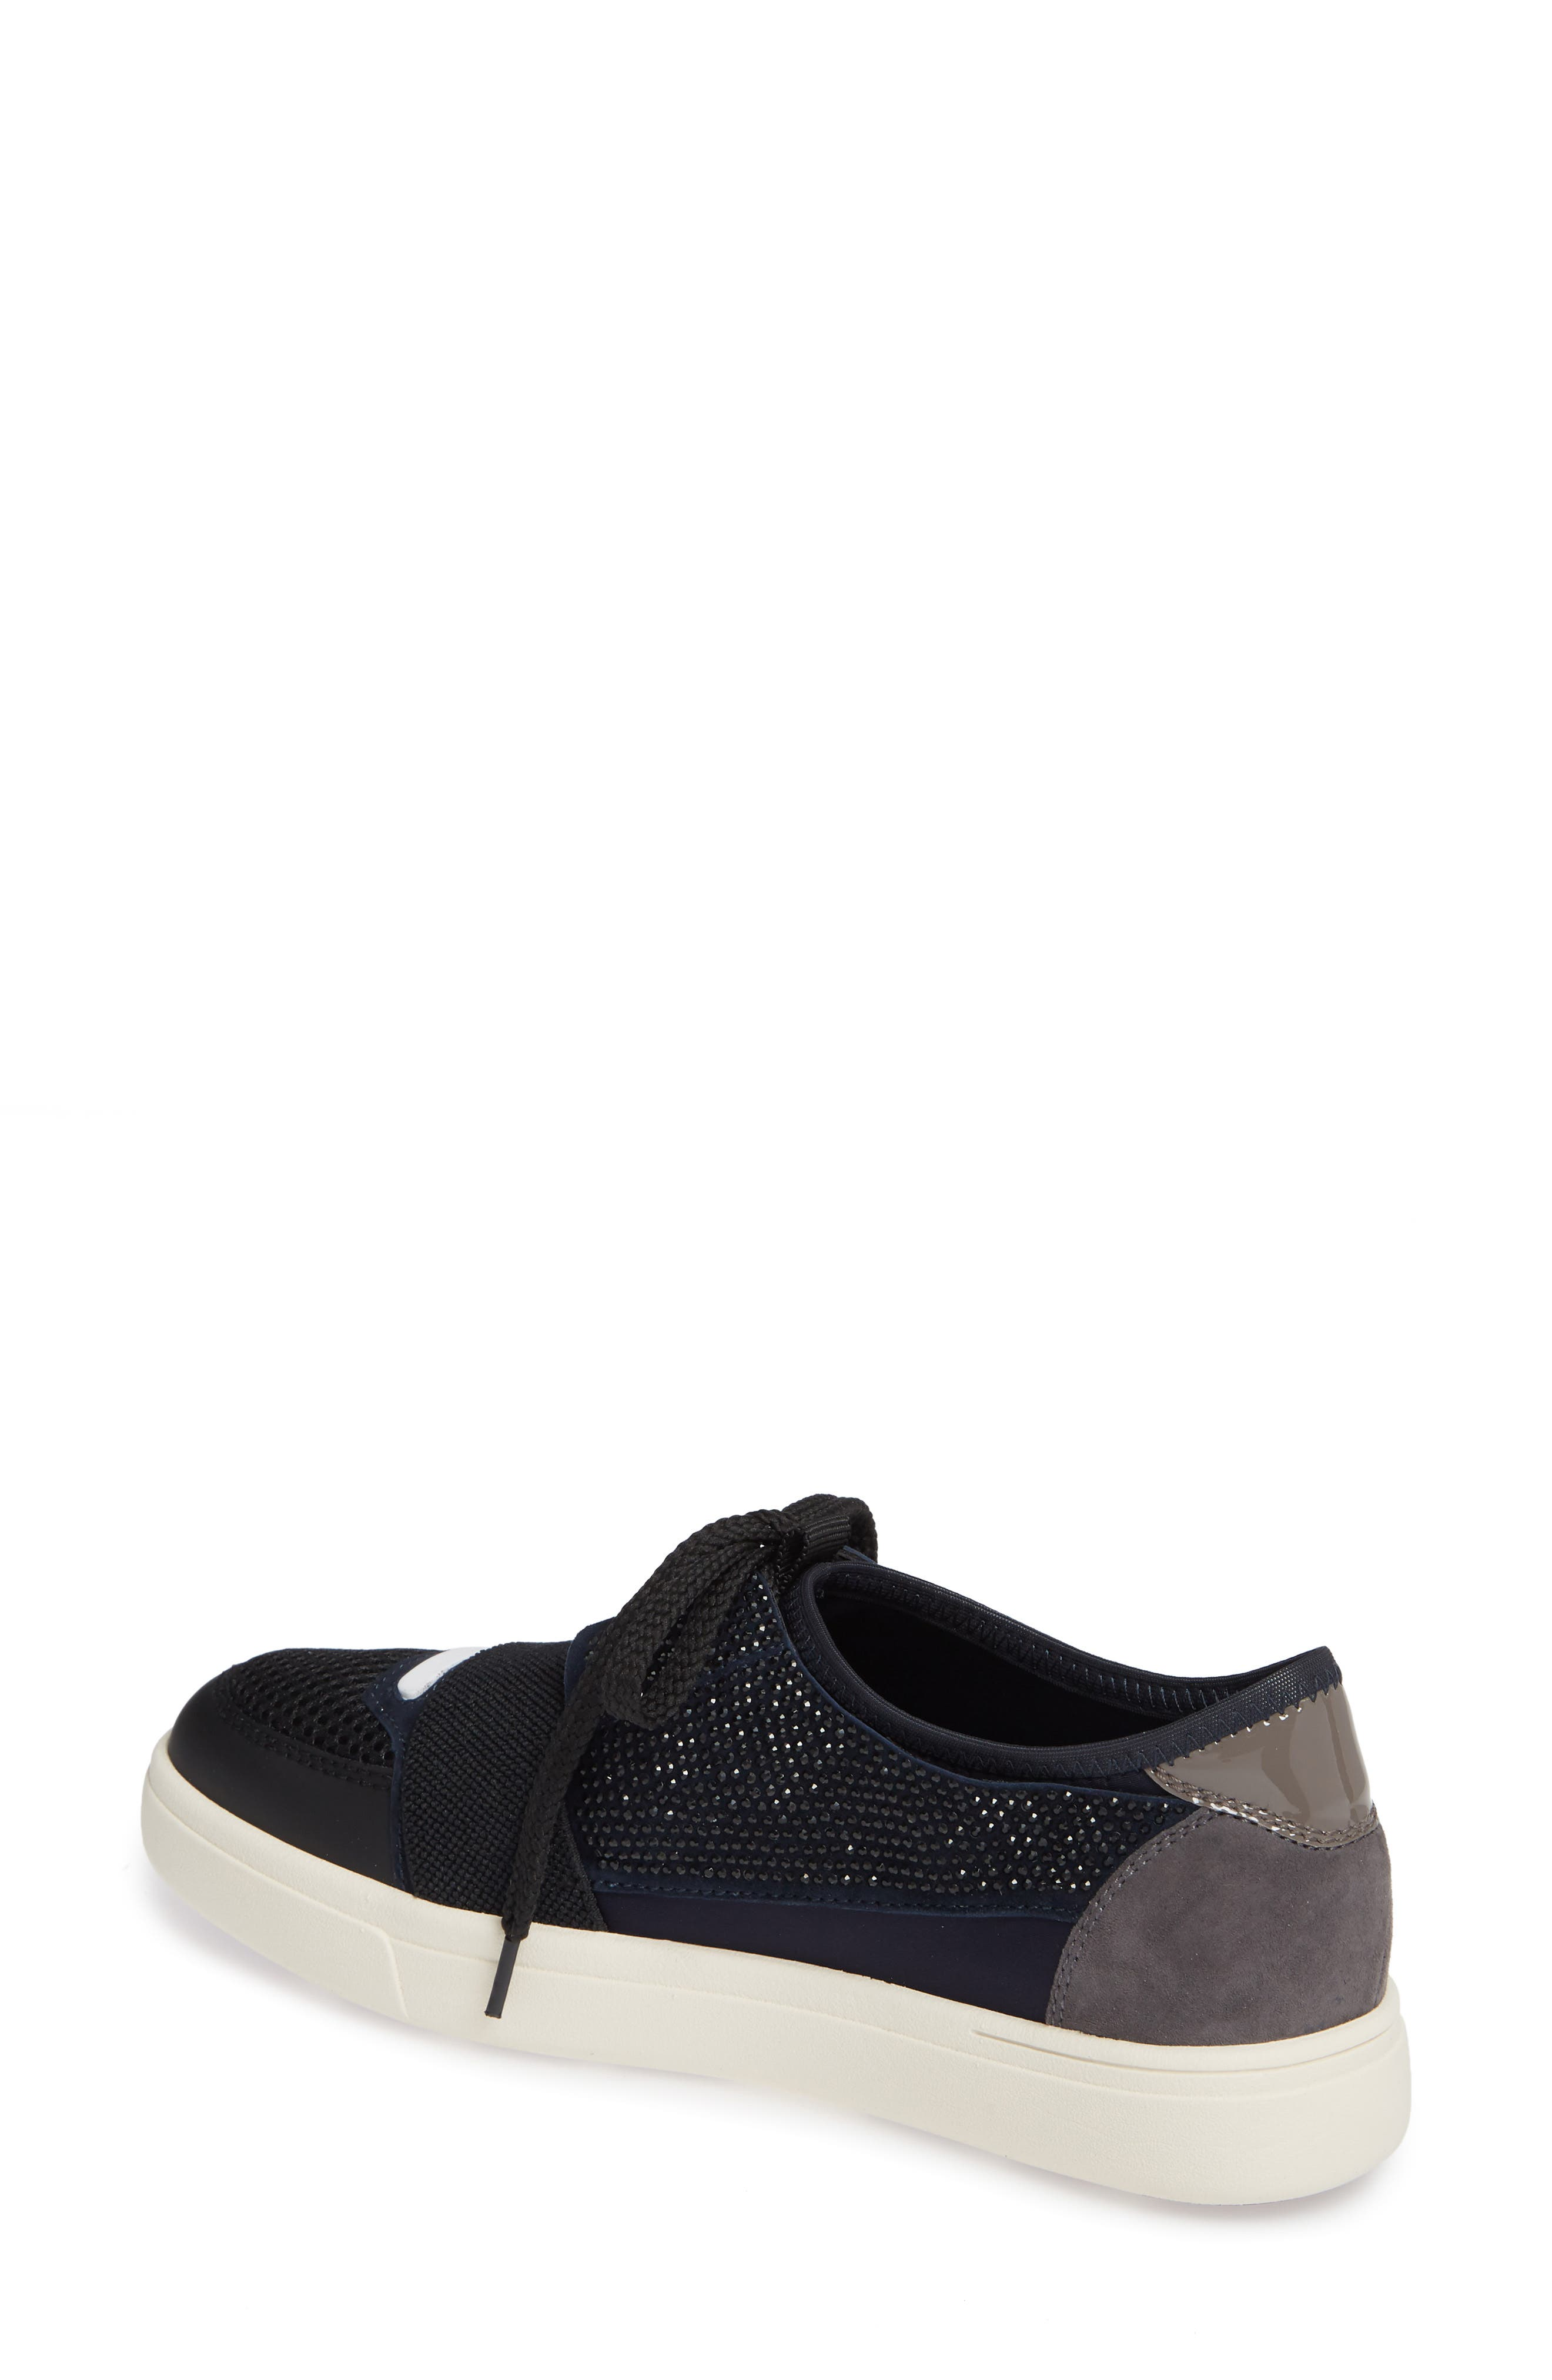 Onella Lace-Up Sneaker,                             Alternate thumbnail 2, color,                             BLACK/ NAVY/ GREY MULTI